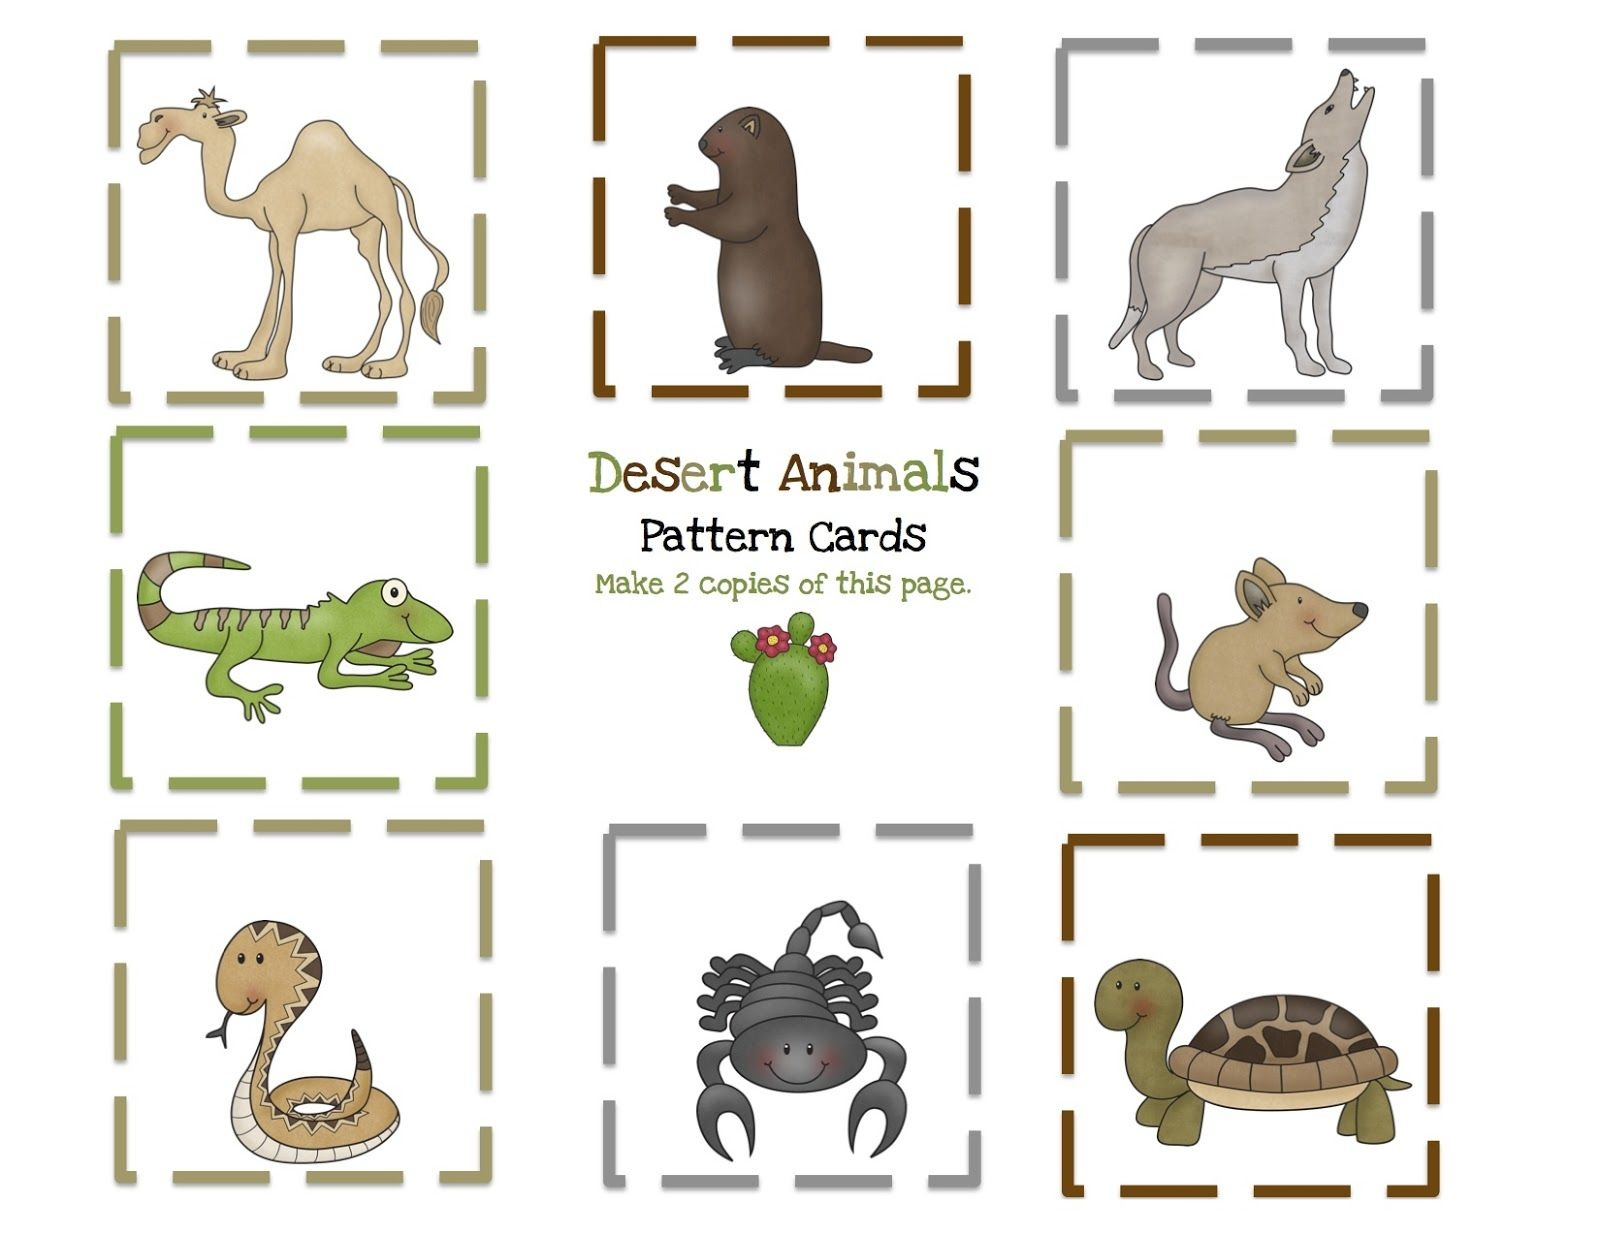 Preschool Printables: Desert Animals Printable | Preschool - Free Printable Desert Animals